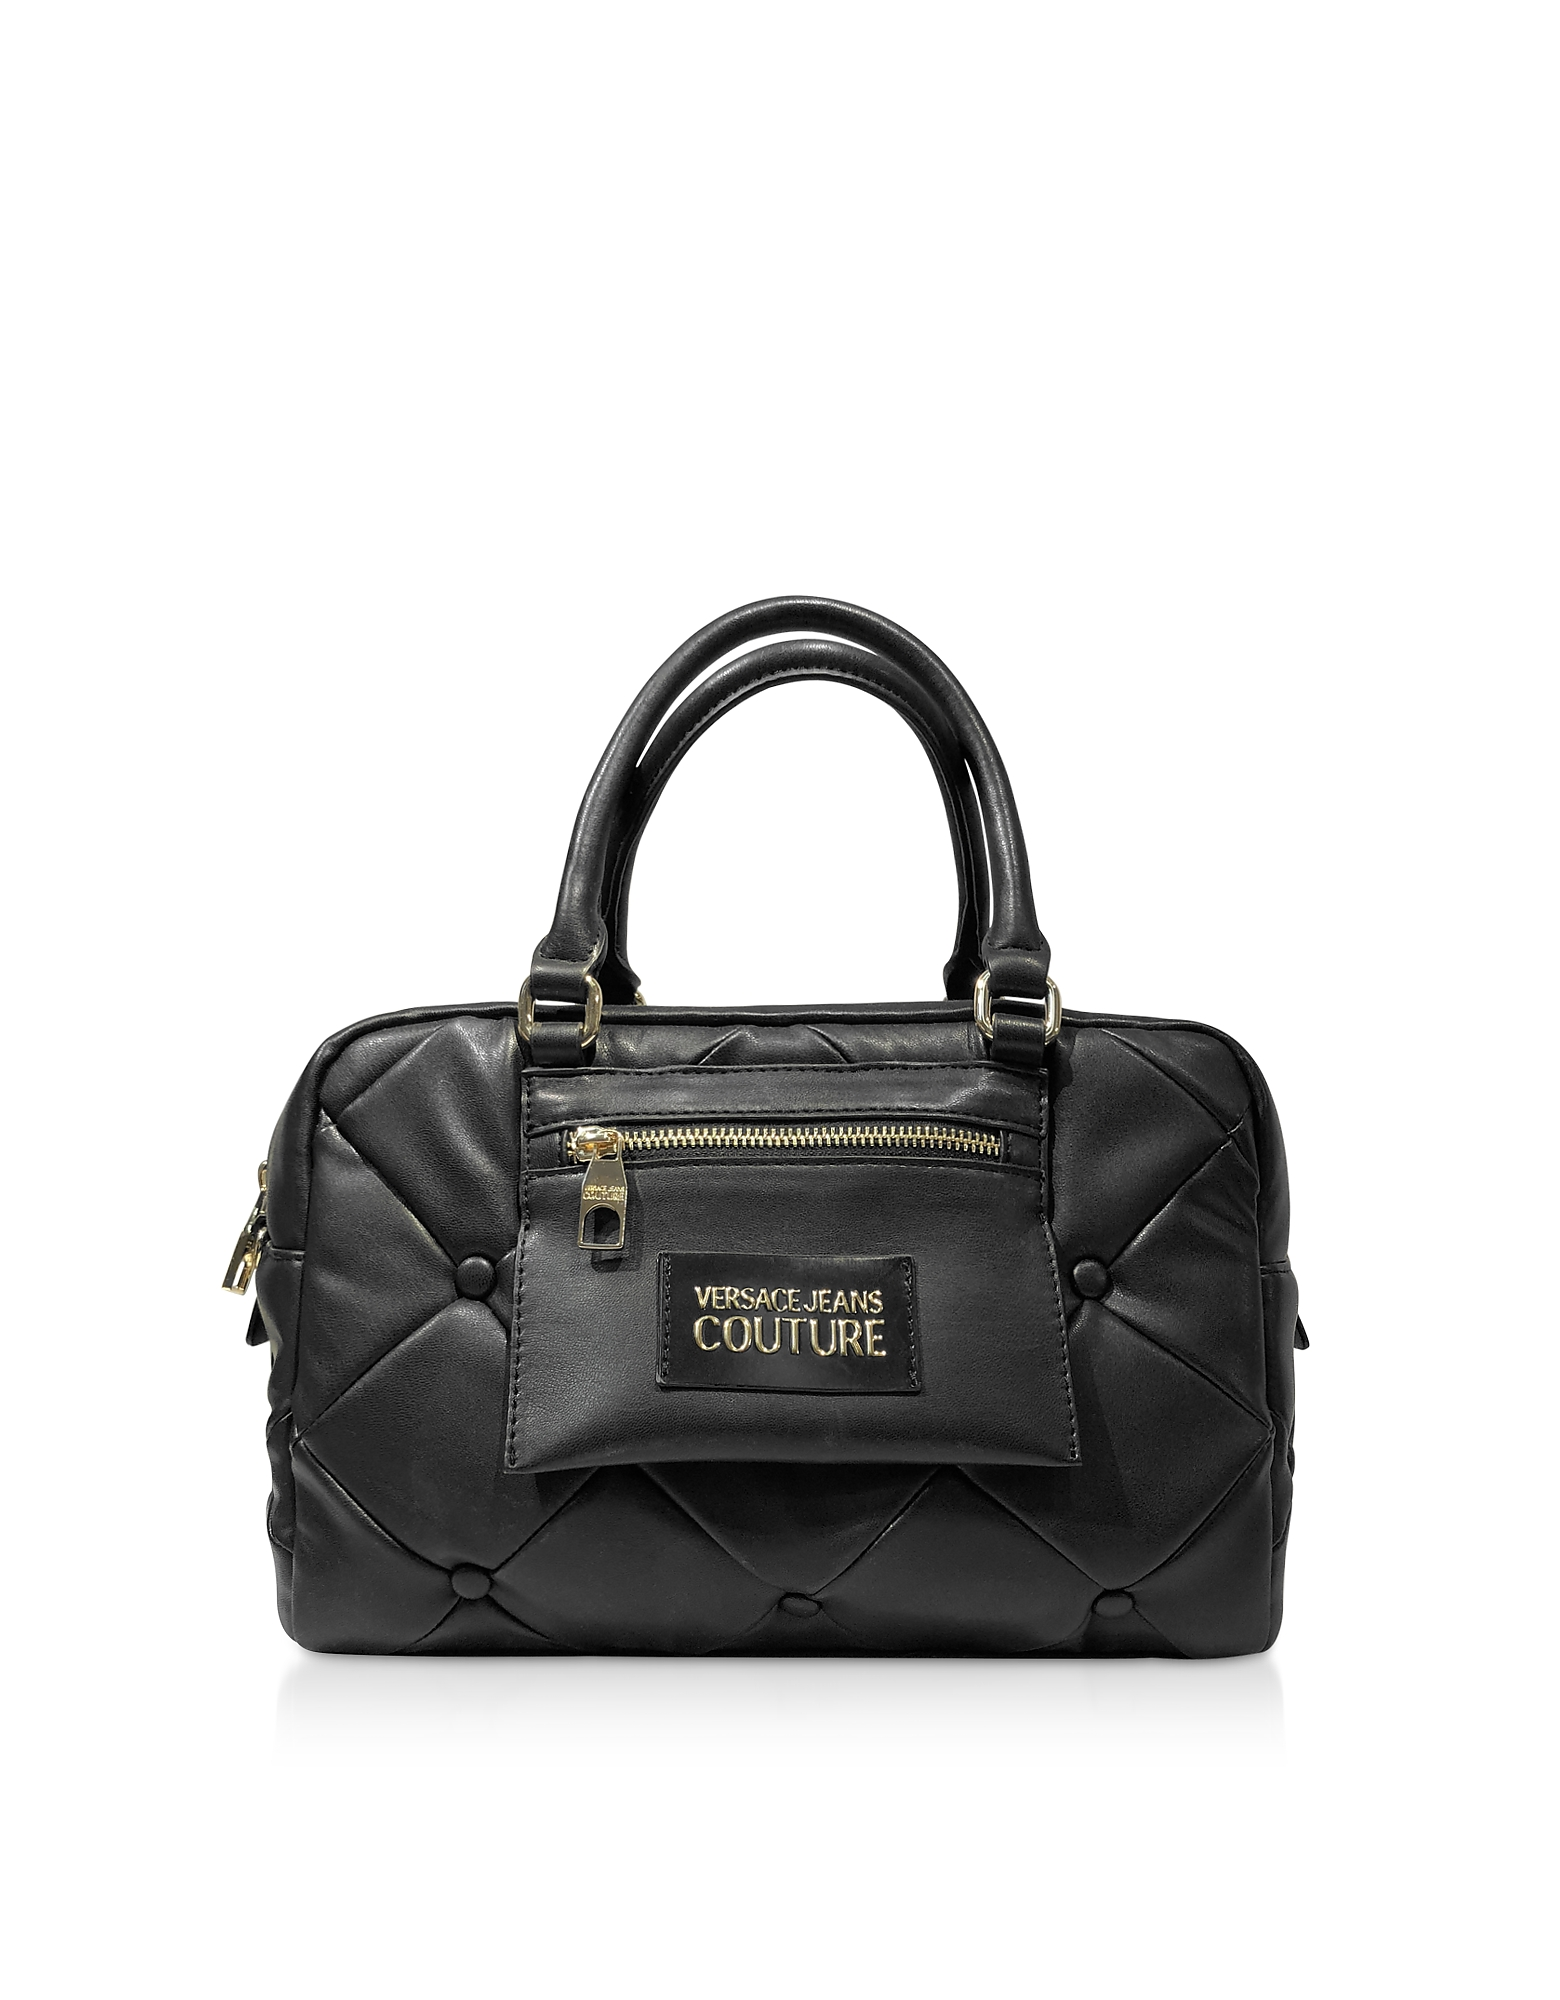 Versace Jeans Couture Designer Handbags, Quilted Nappa Satchel Bag